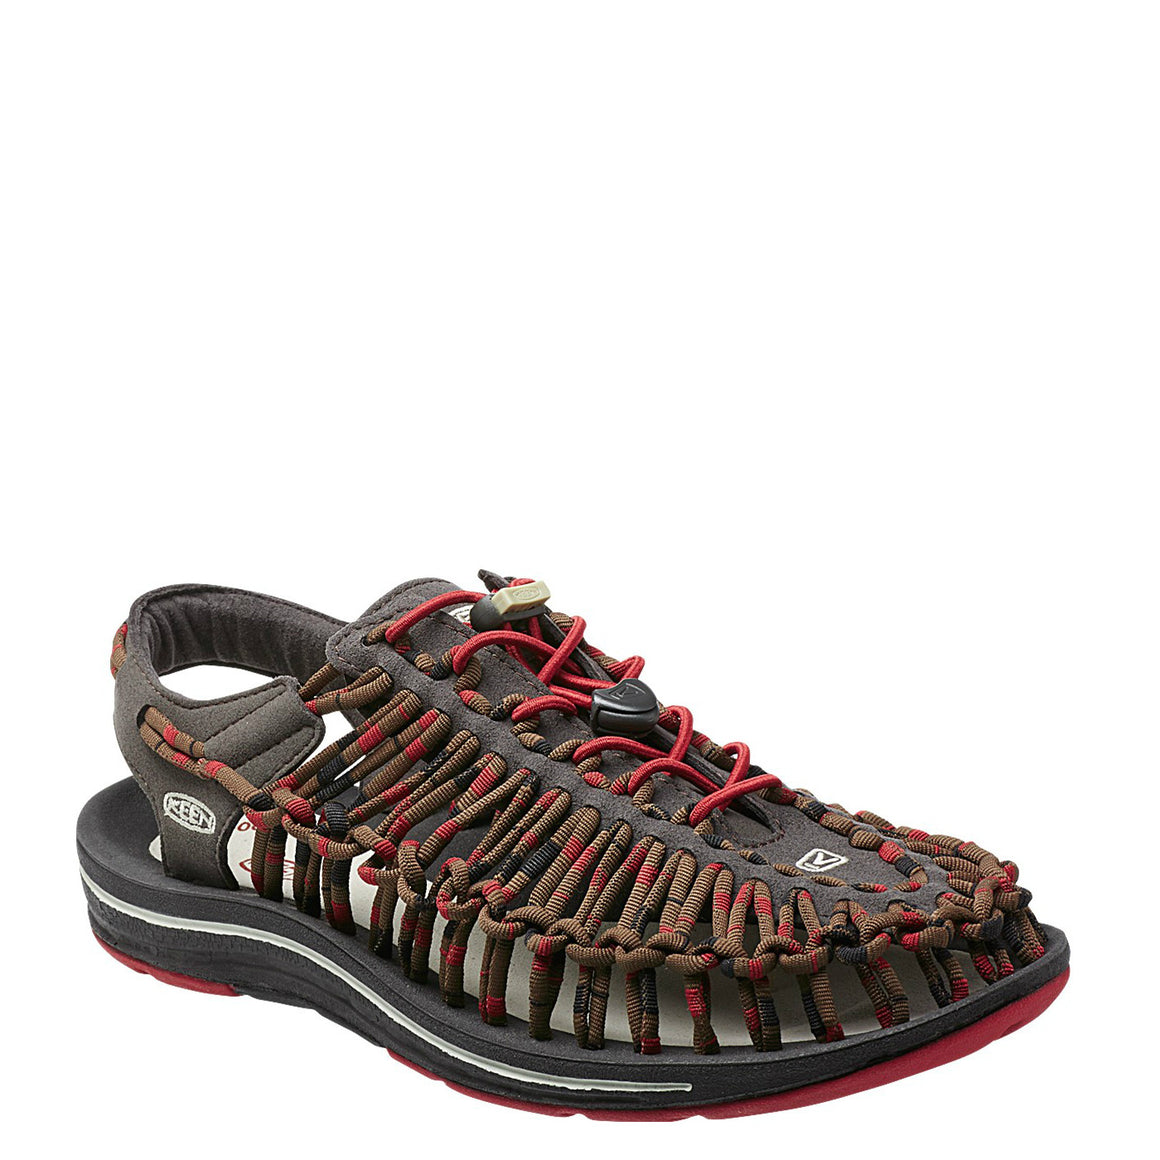 Keen Men's Uneek Round Cord - Red Dahlia/Raya 1014620